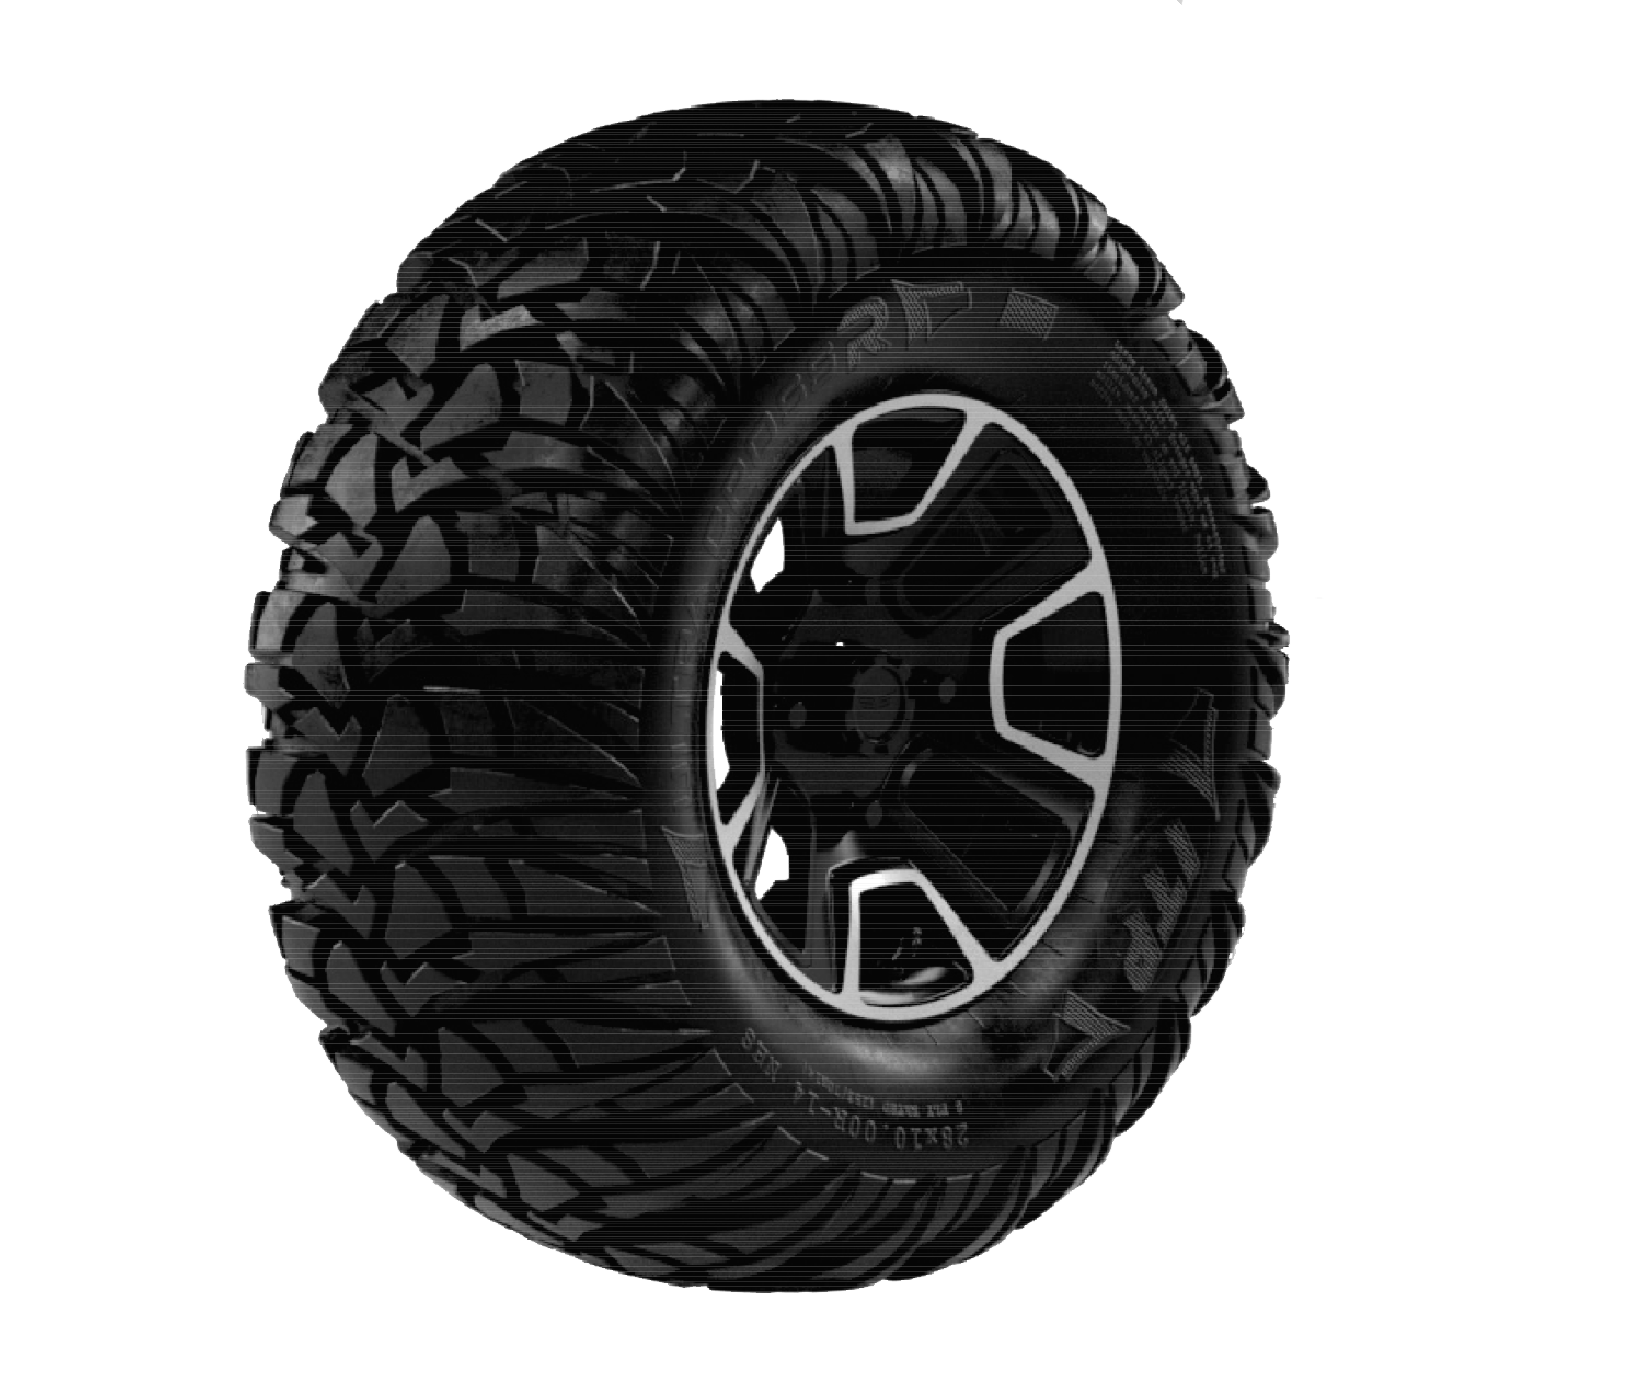 ITP Ultracross Tire and/or Aluminum Wheel